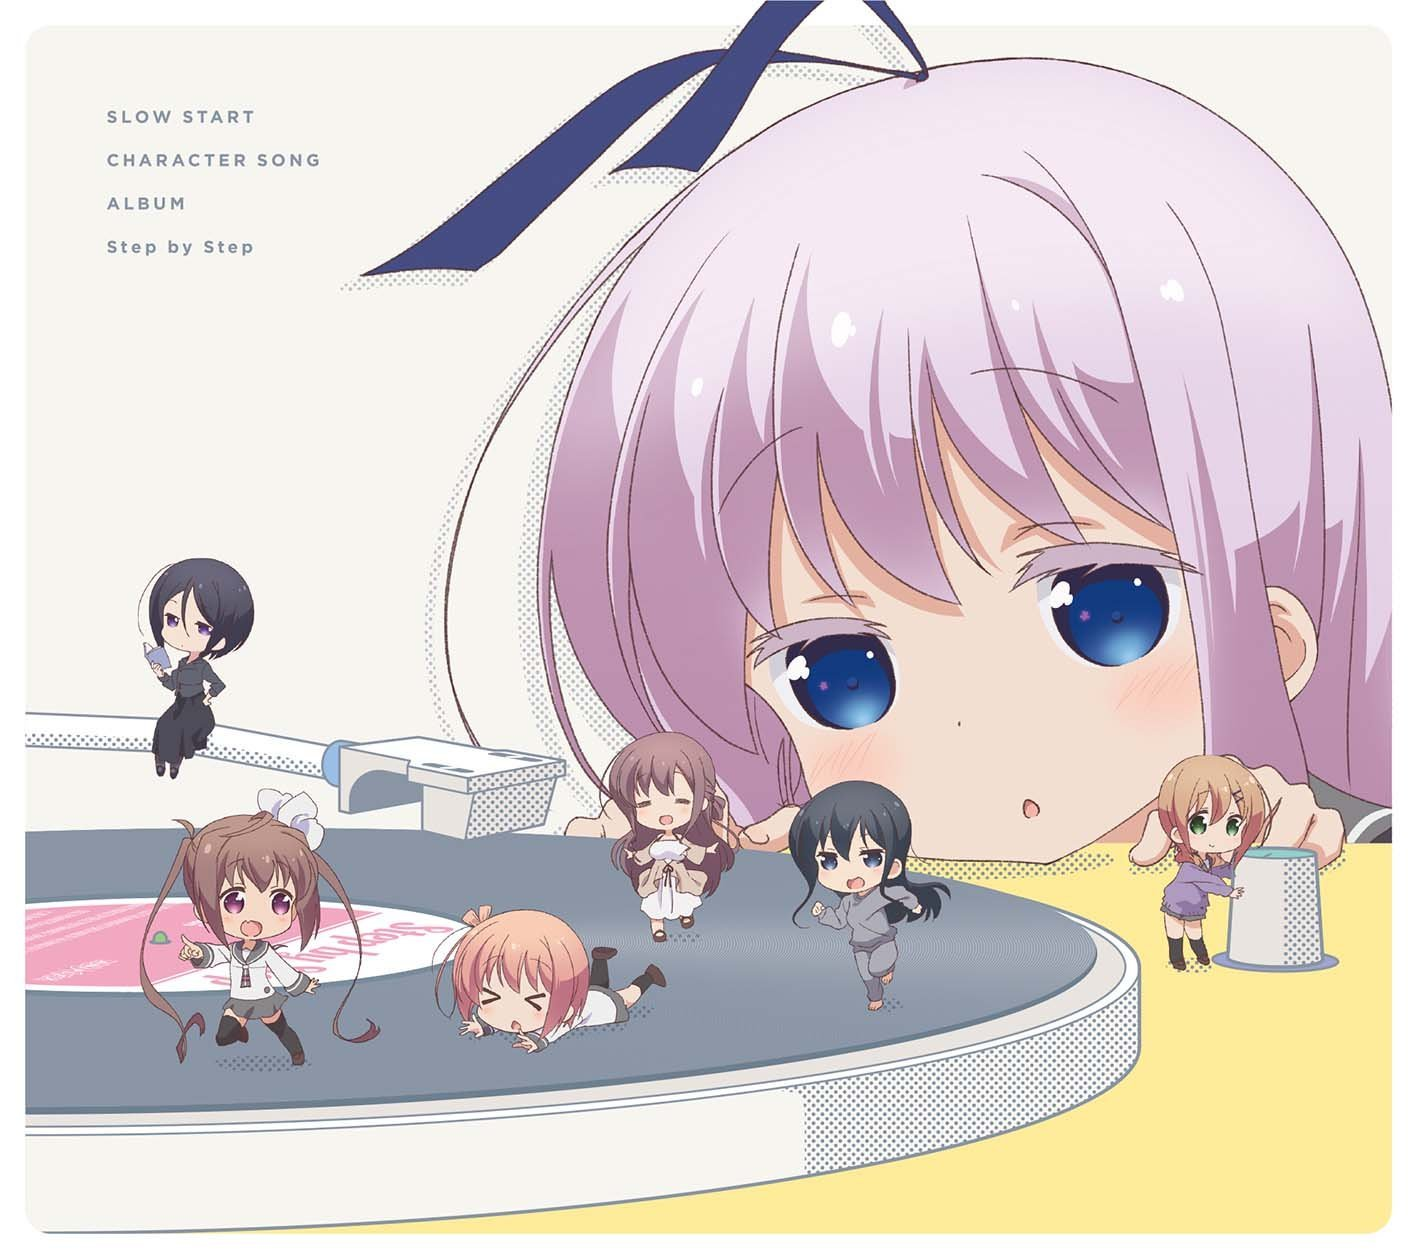 SLOW START CHARACTER SONG ALBUM: Step by Step